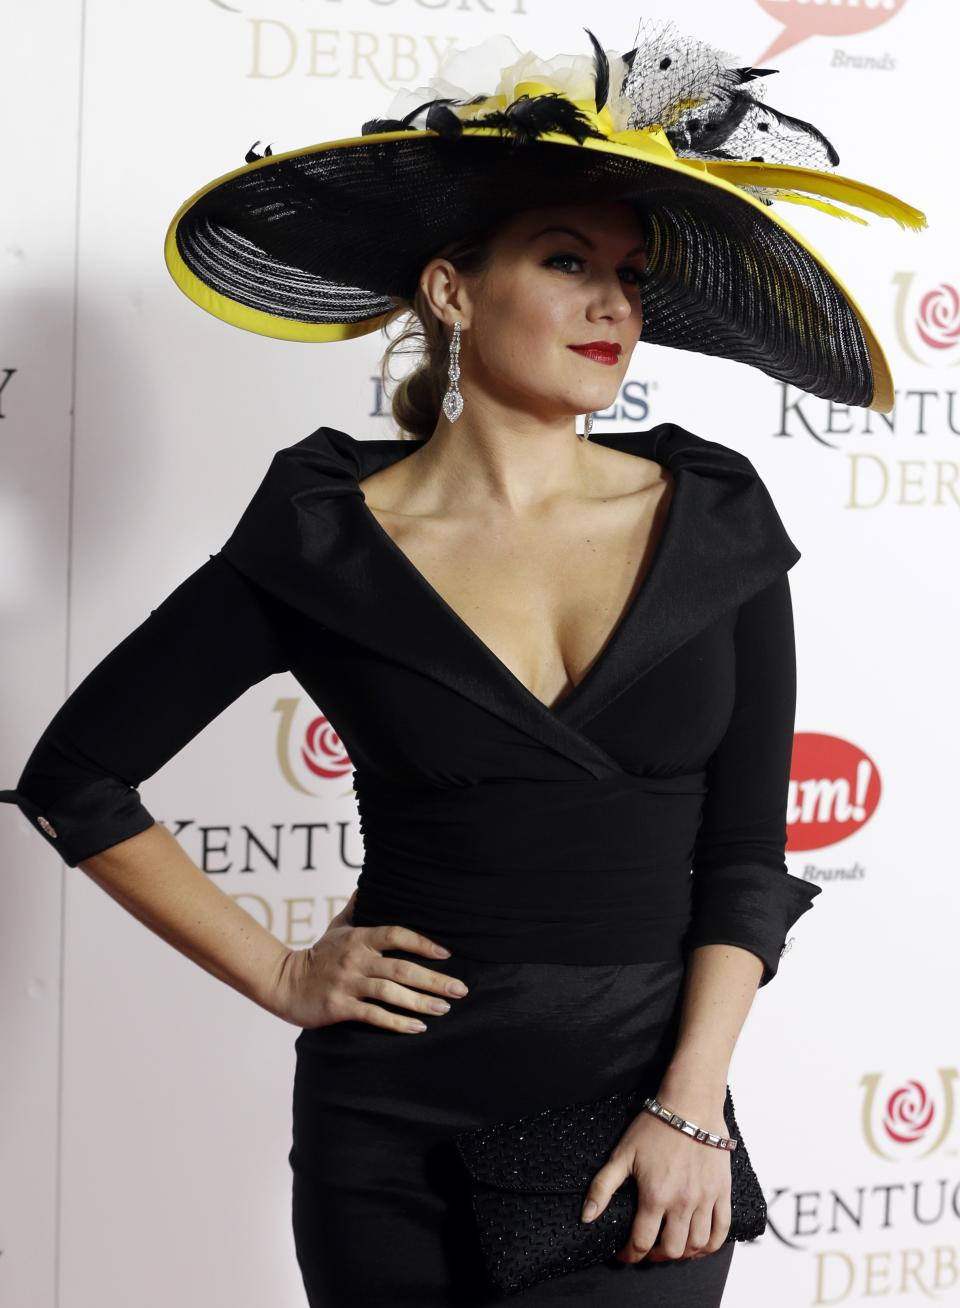 Miss American 2013 Mallory Hagan arrives to attend the 139th Kentucky Derby at Churchill Downs Saturday, May 4, 2013, in Louisville, Ky. (AP Photo/Darron Cummings)